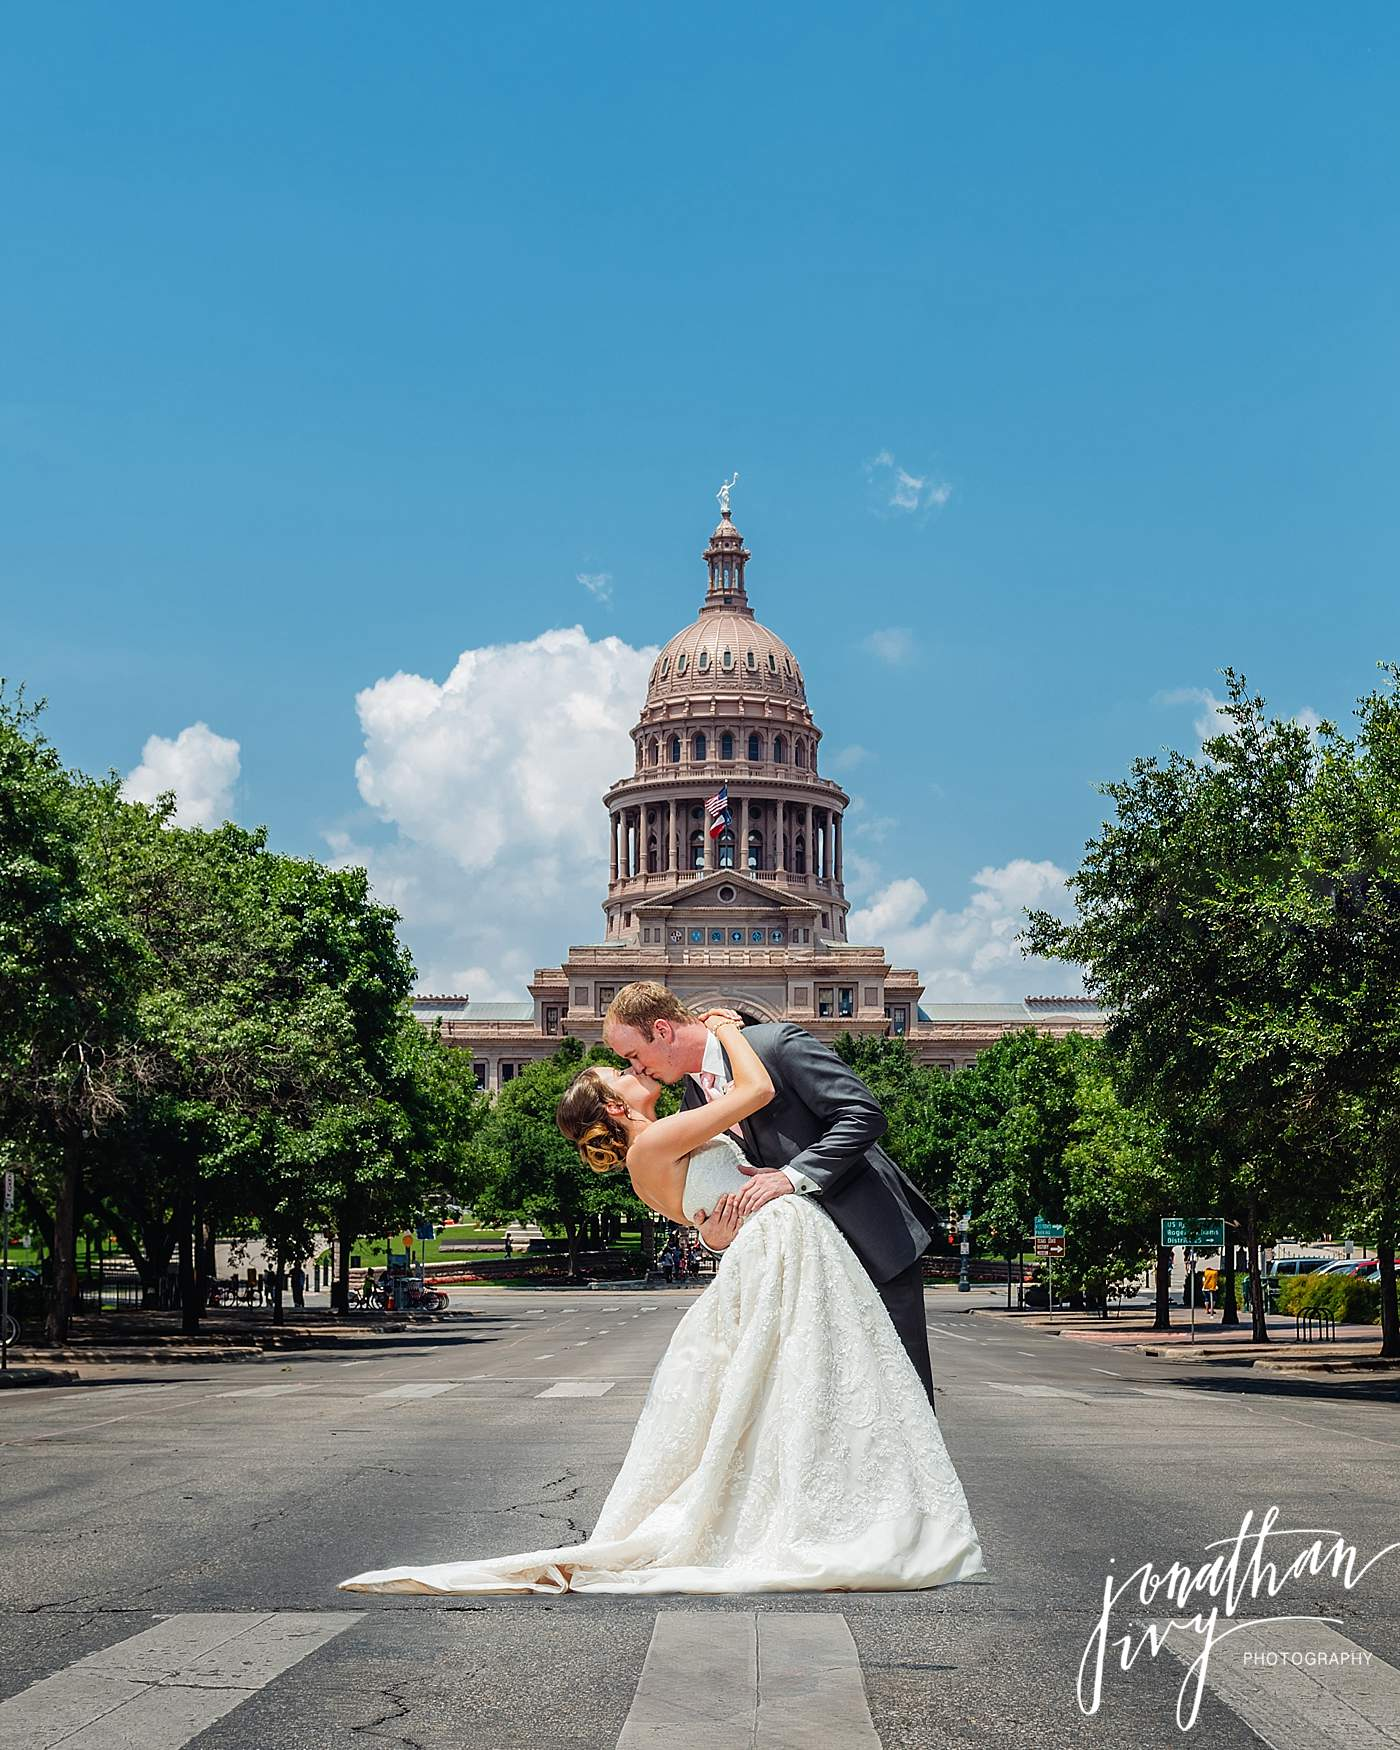 Austin Capitol Building Bride Groom Wedding Photo